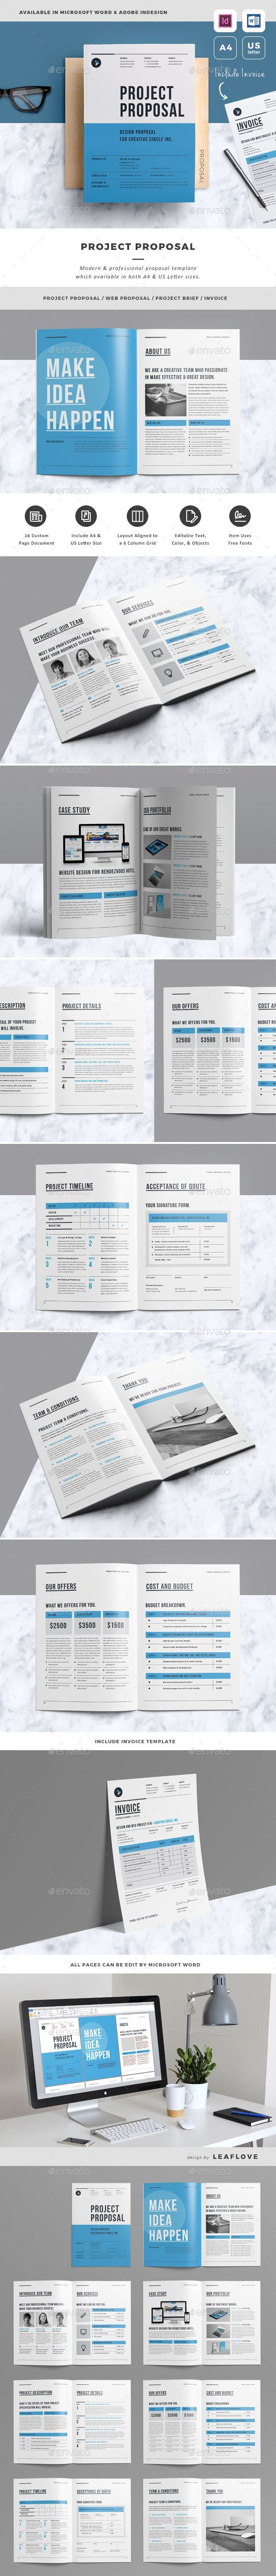 Proposal - #Proposals & Invoices Stationery Download Here:    https://graphicriver.net/item/proposal/19285366?ref=suz_562geid